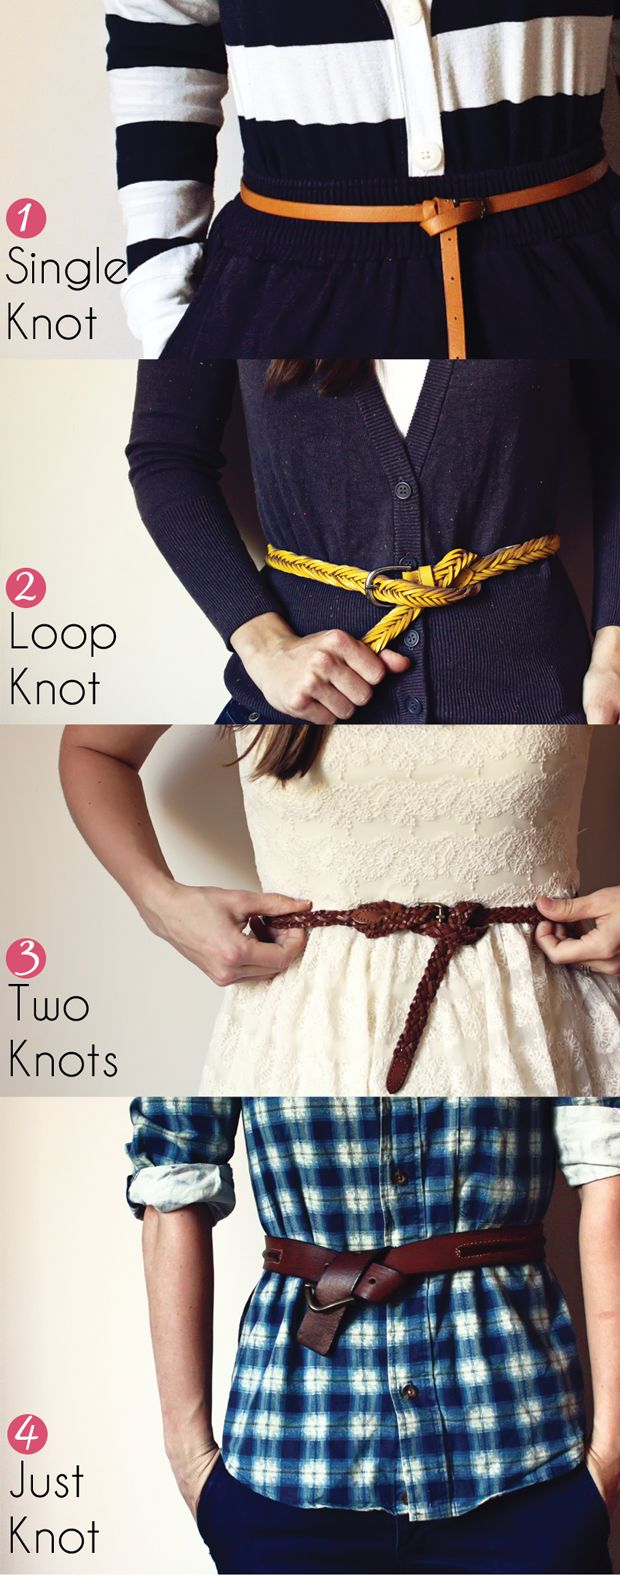 4 ways to knot a belt. Good to finally know!